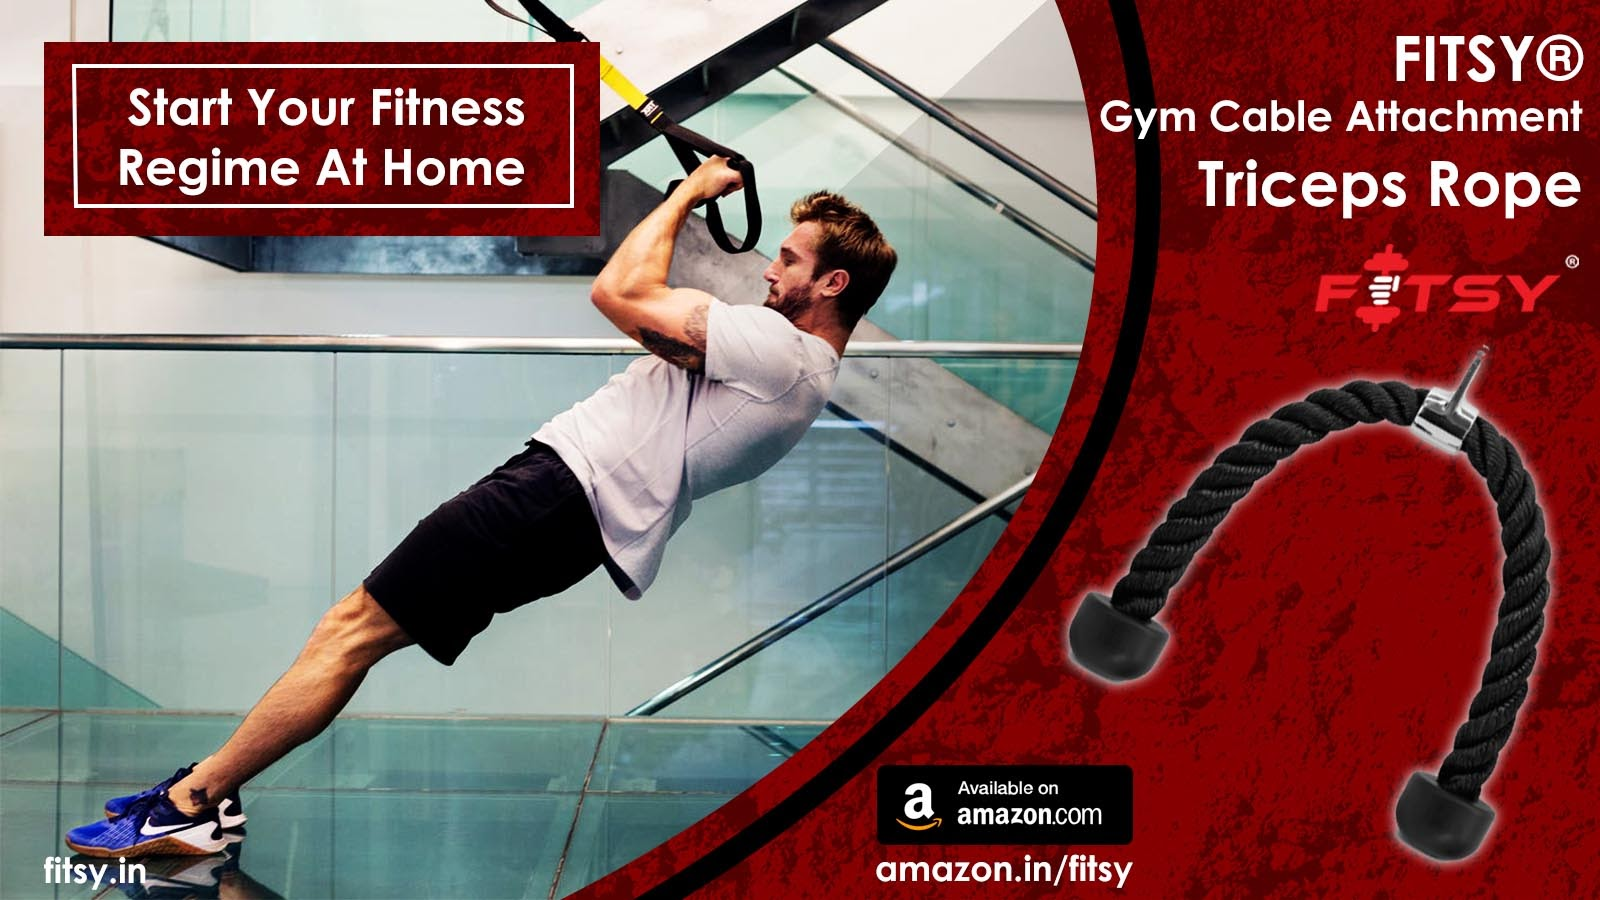 Start Your Fitness Regime At Home, In A Park, Or Anywhere You Want Without Joining A Gym!